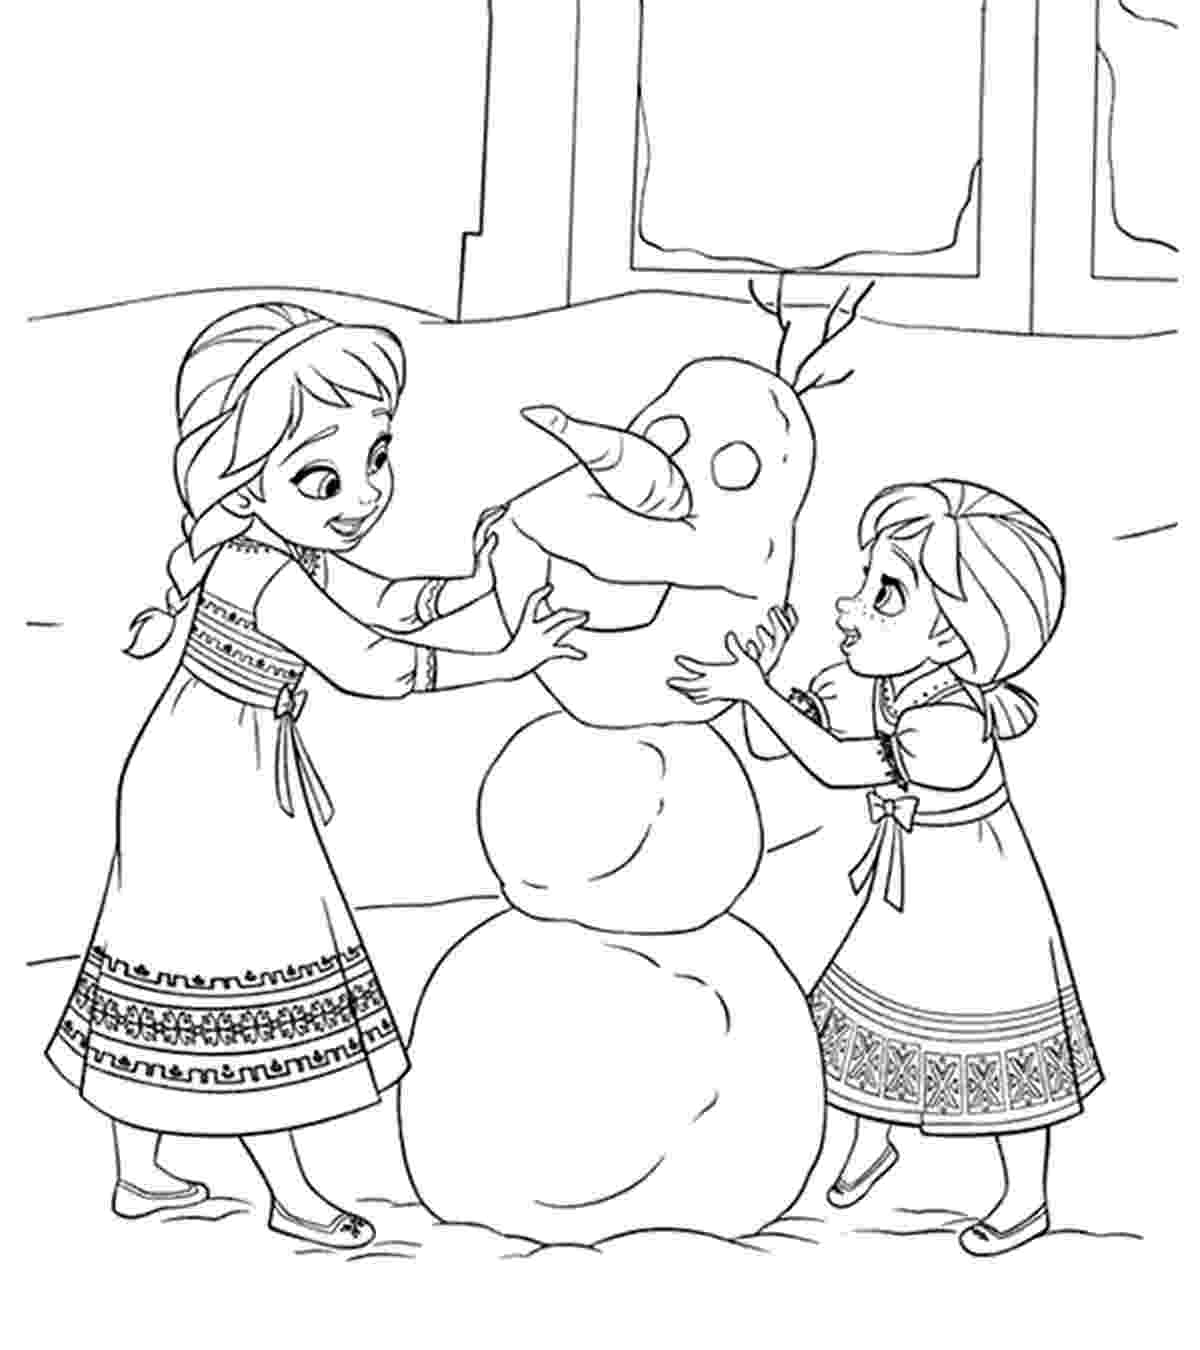 frozen images to color frozen coloring pages only coloring pages images frozen color to